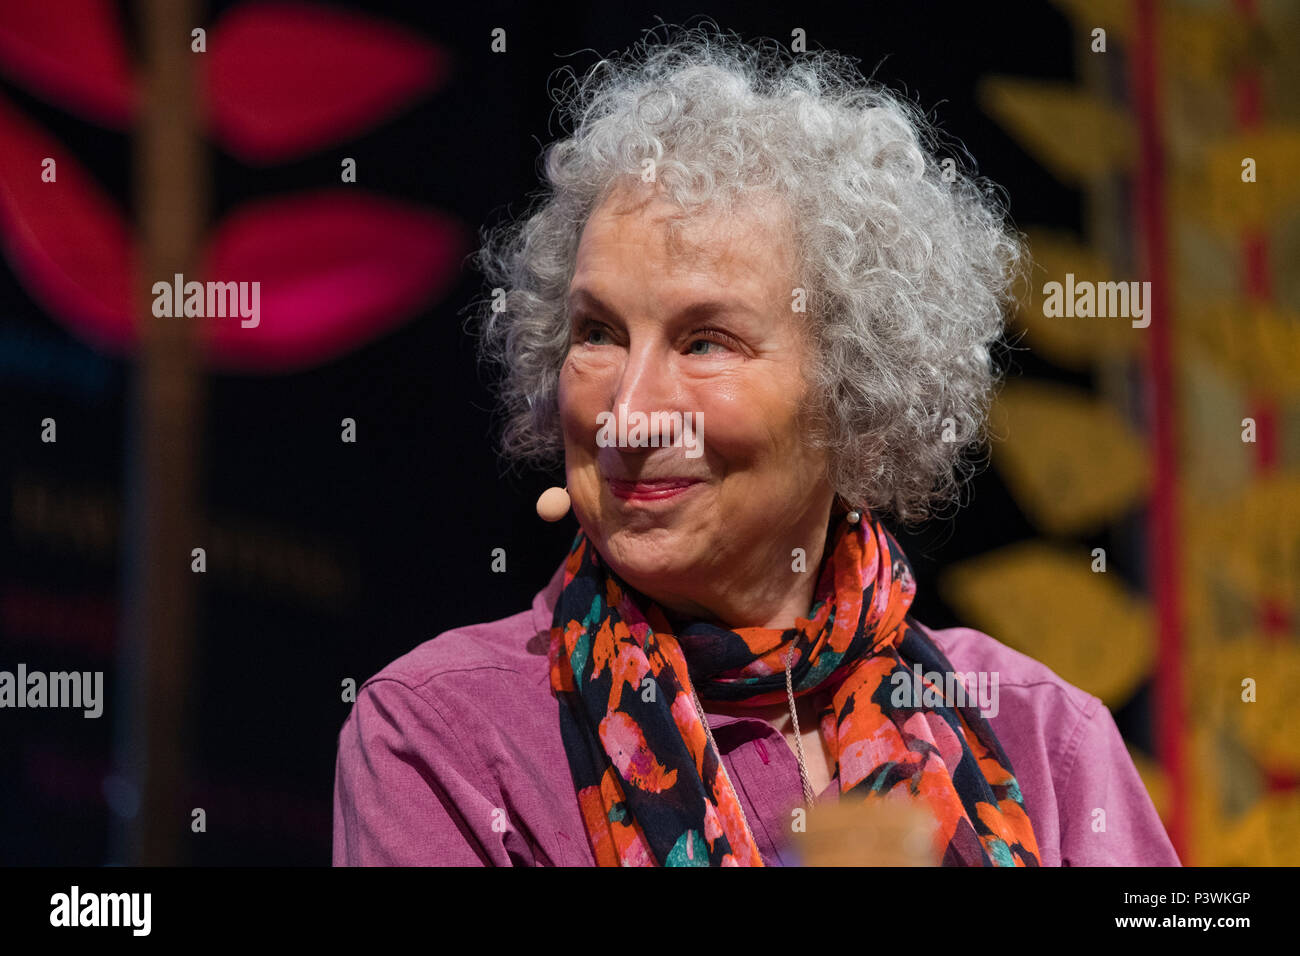 Margaret Atwood, acclaimed Canadian poet, novelist, literary critic, essayist, inventor, teacher and environmental activist,  appearing at the 2018 Hay Festival of Literature and the Arts.  The annual festival  in the small town of Hay on Wye on the Welsh borders , attracts  writers and thinkers from across the globe for 10 days of celebrations of the best of the written word, political though  and literary debate - Stock Image